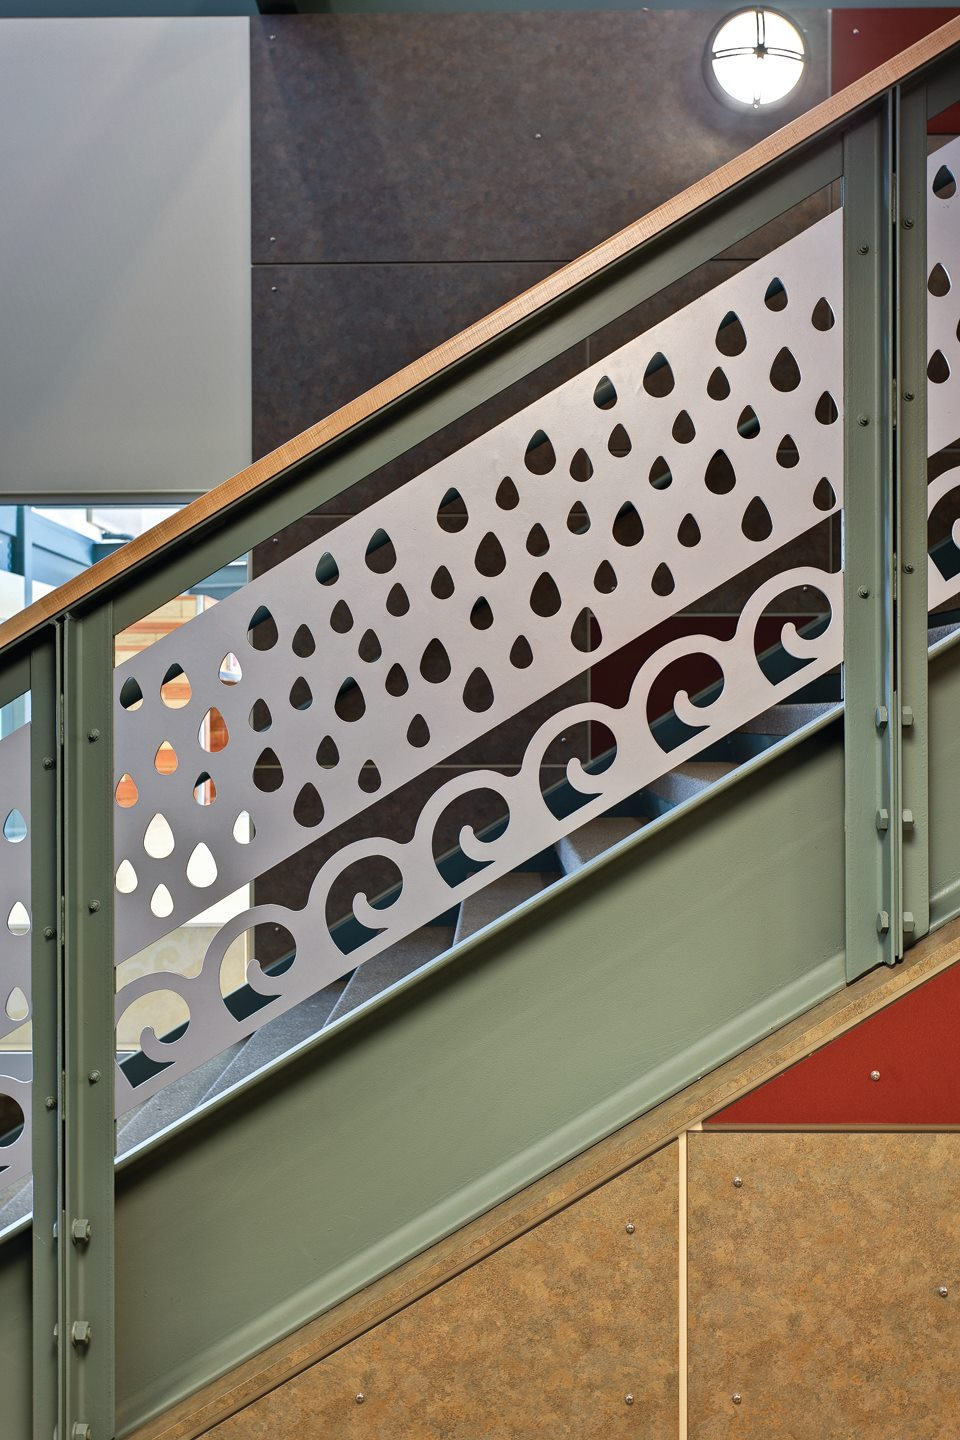 A stair rail I designed while working for the wonderful Portland firm,  DOWA  (now DOWA-IBI). My role included designing the custom rail, selected colors, and organized the pattern and finishes below the stair on the wall.